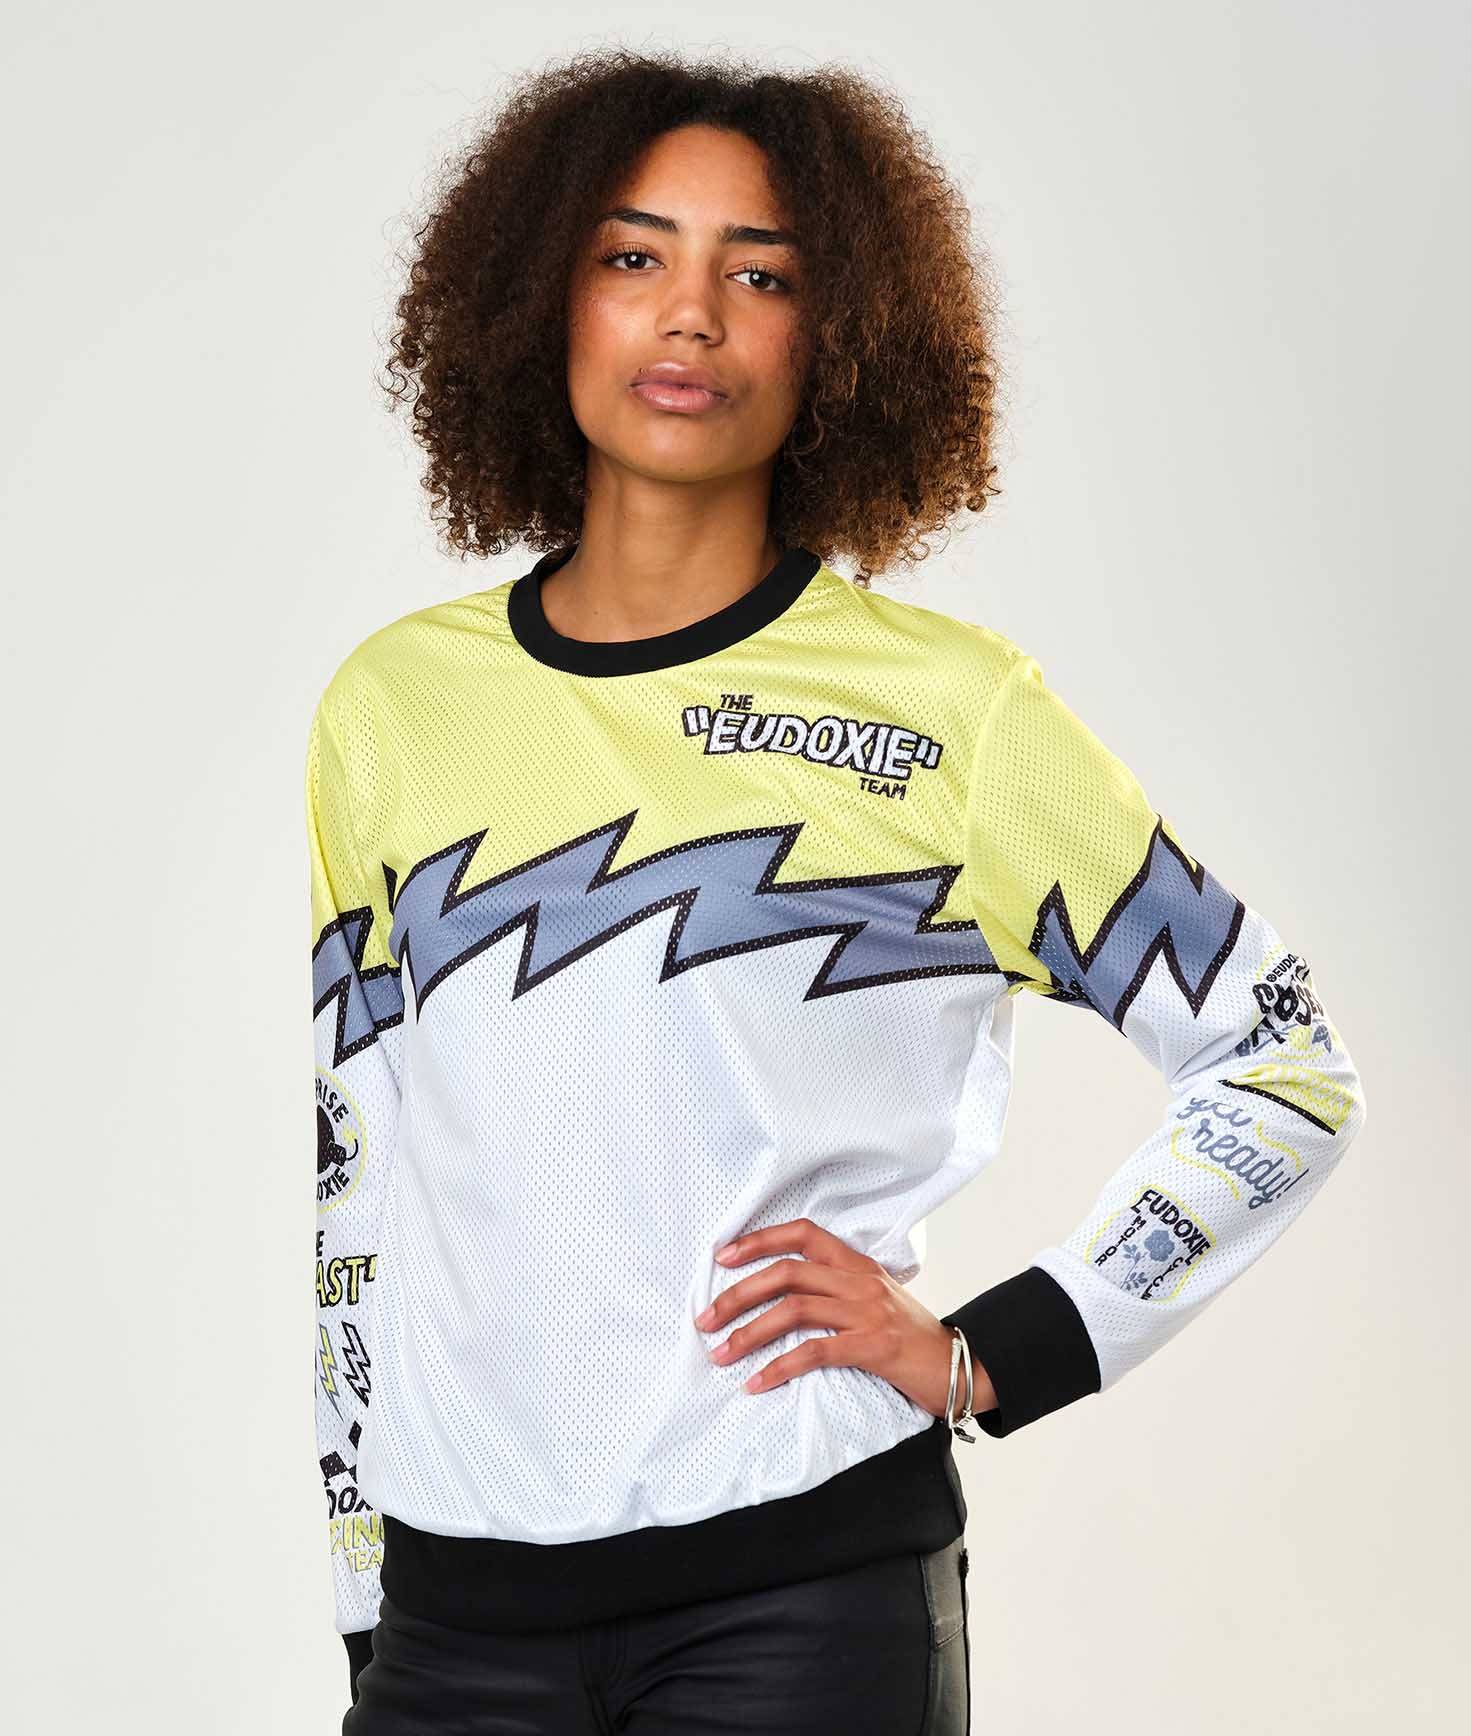 Eudoxie - Eudoxie Charly Long Sleeve Riding Jersey - T-Shirts - Salt Flats Clothing